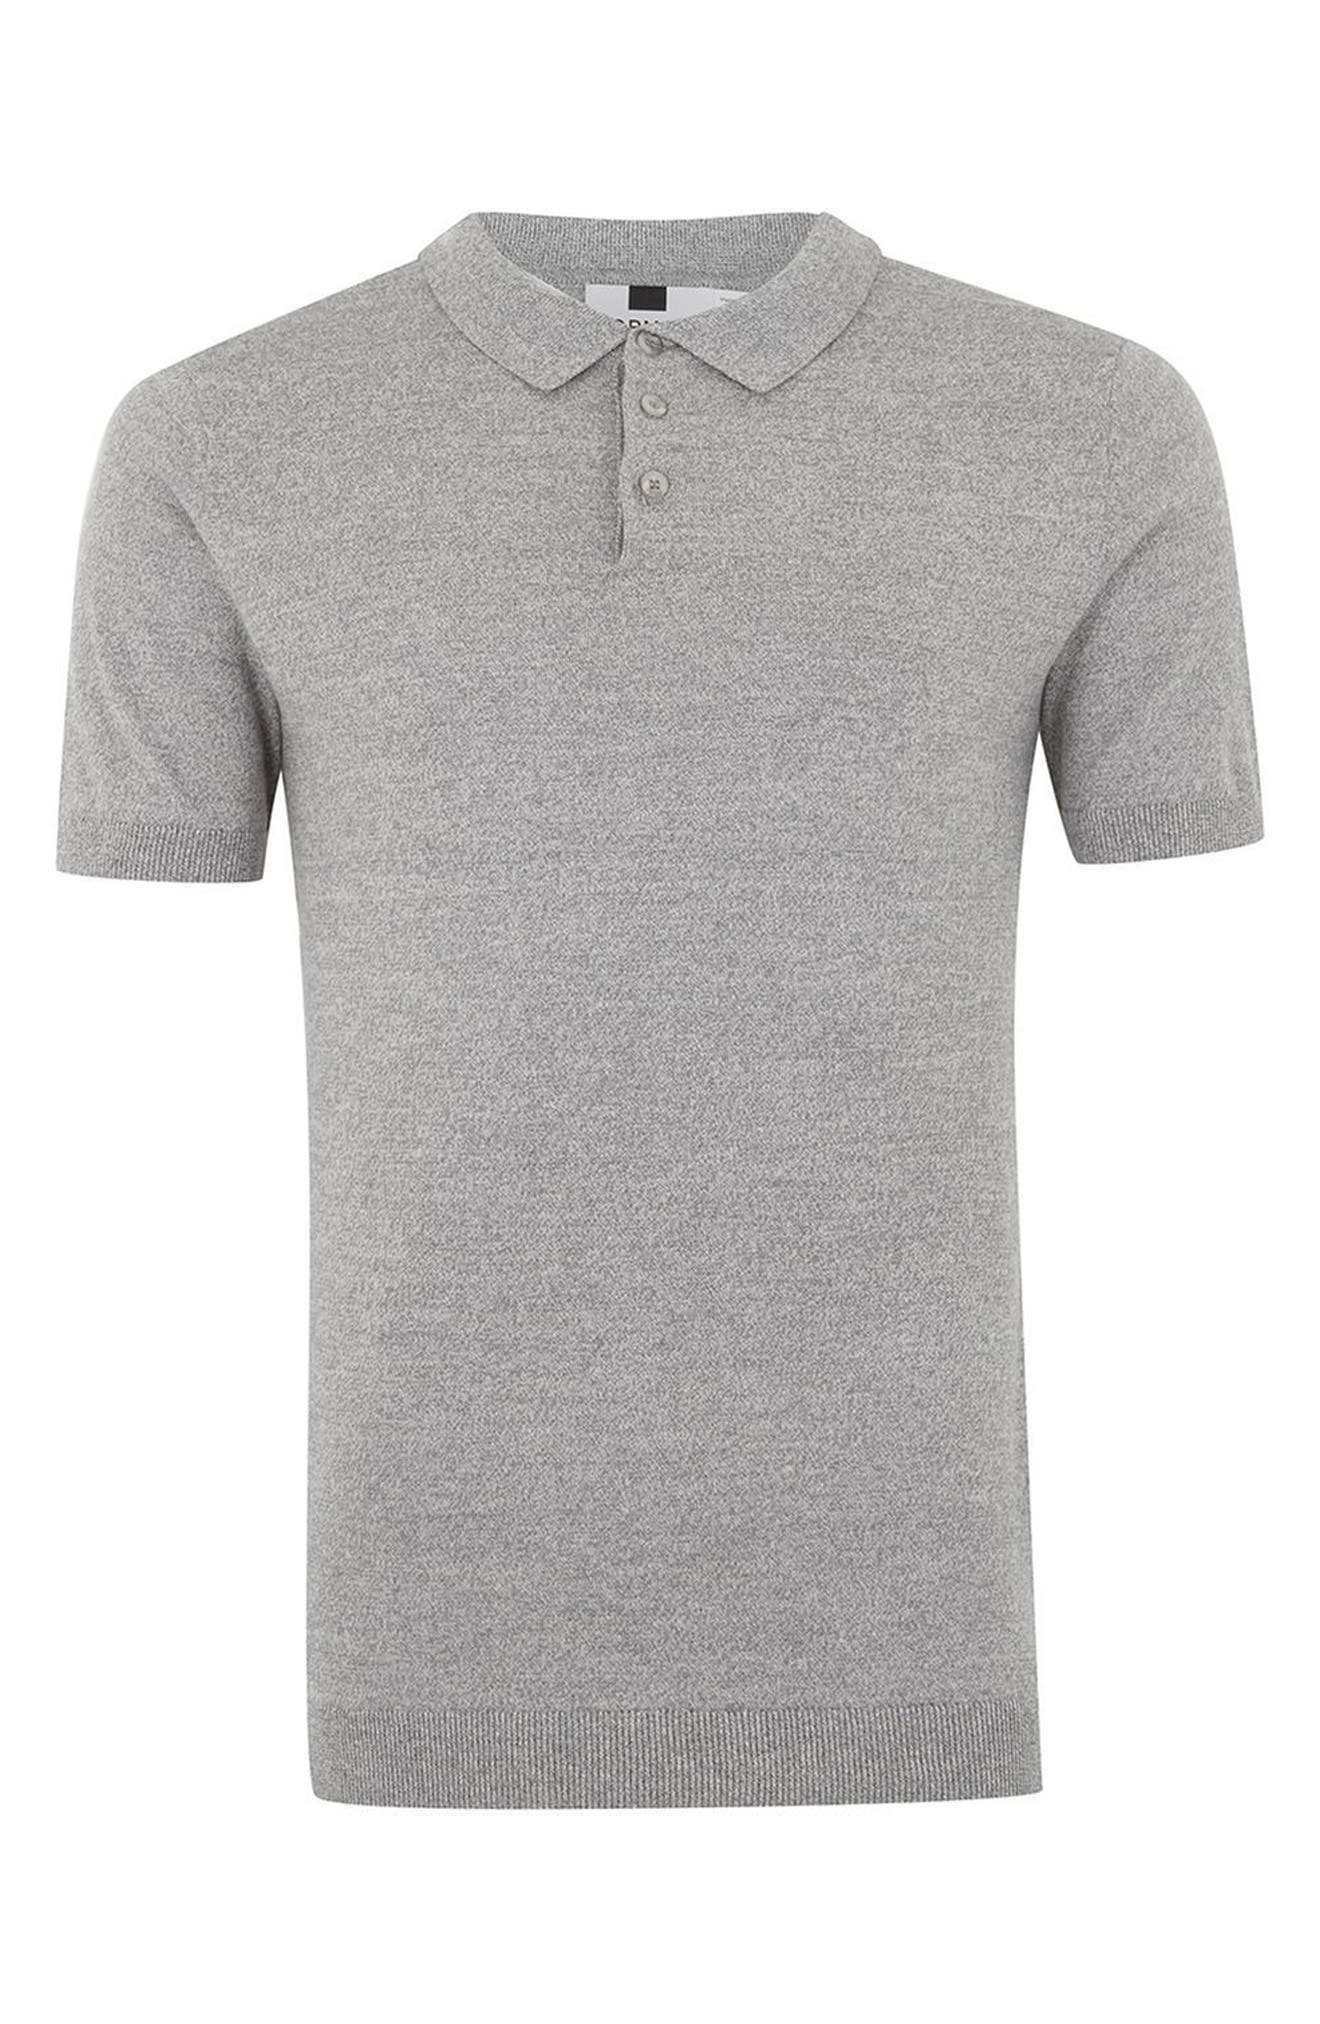 Muscle Fit Jersey Polo,                             Alternate thumbnail 4, color,                             Light Grey